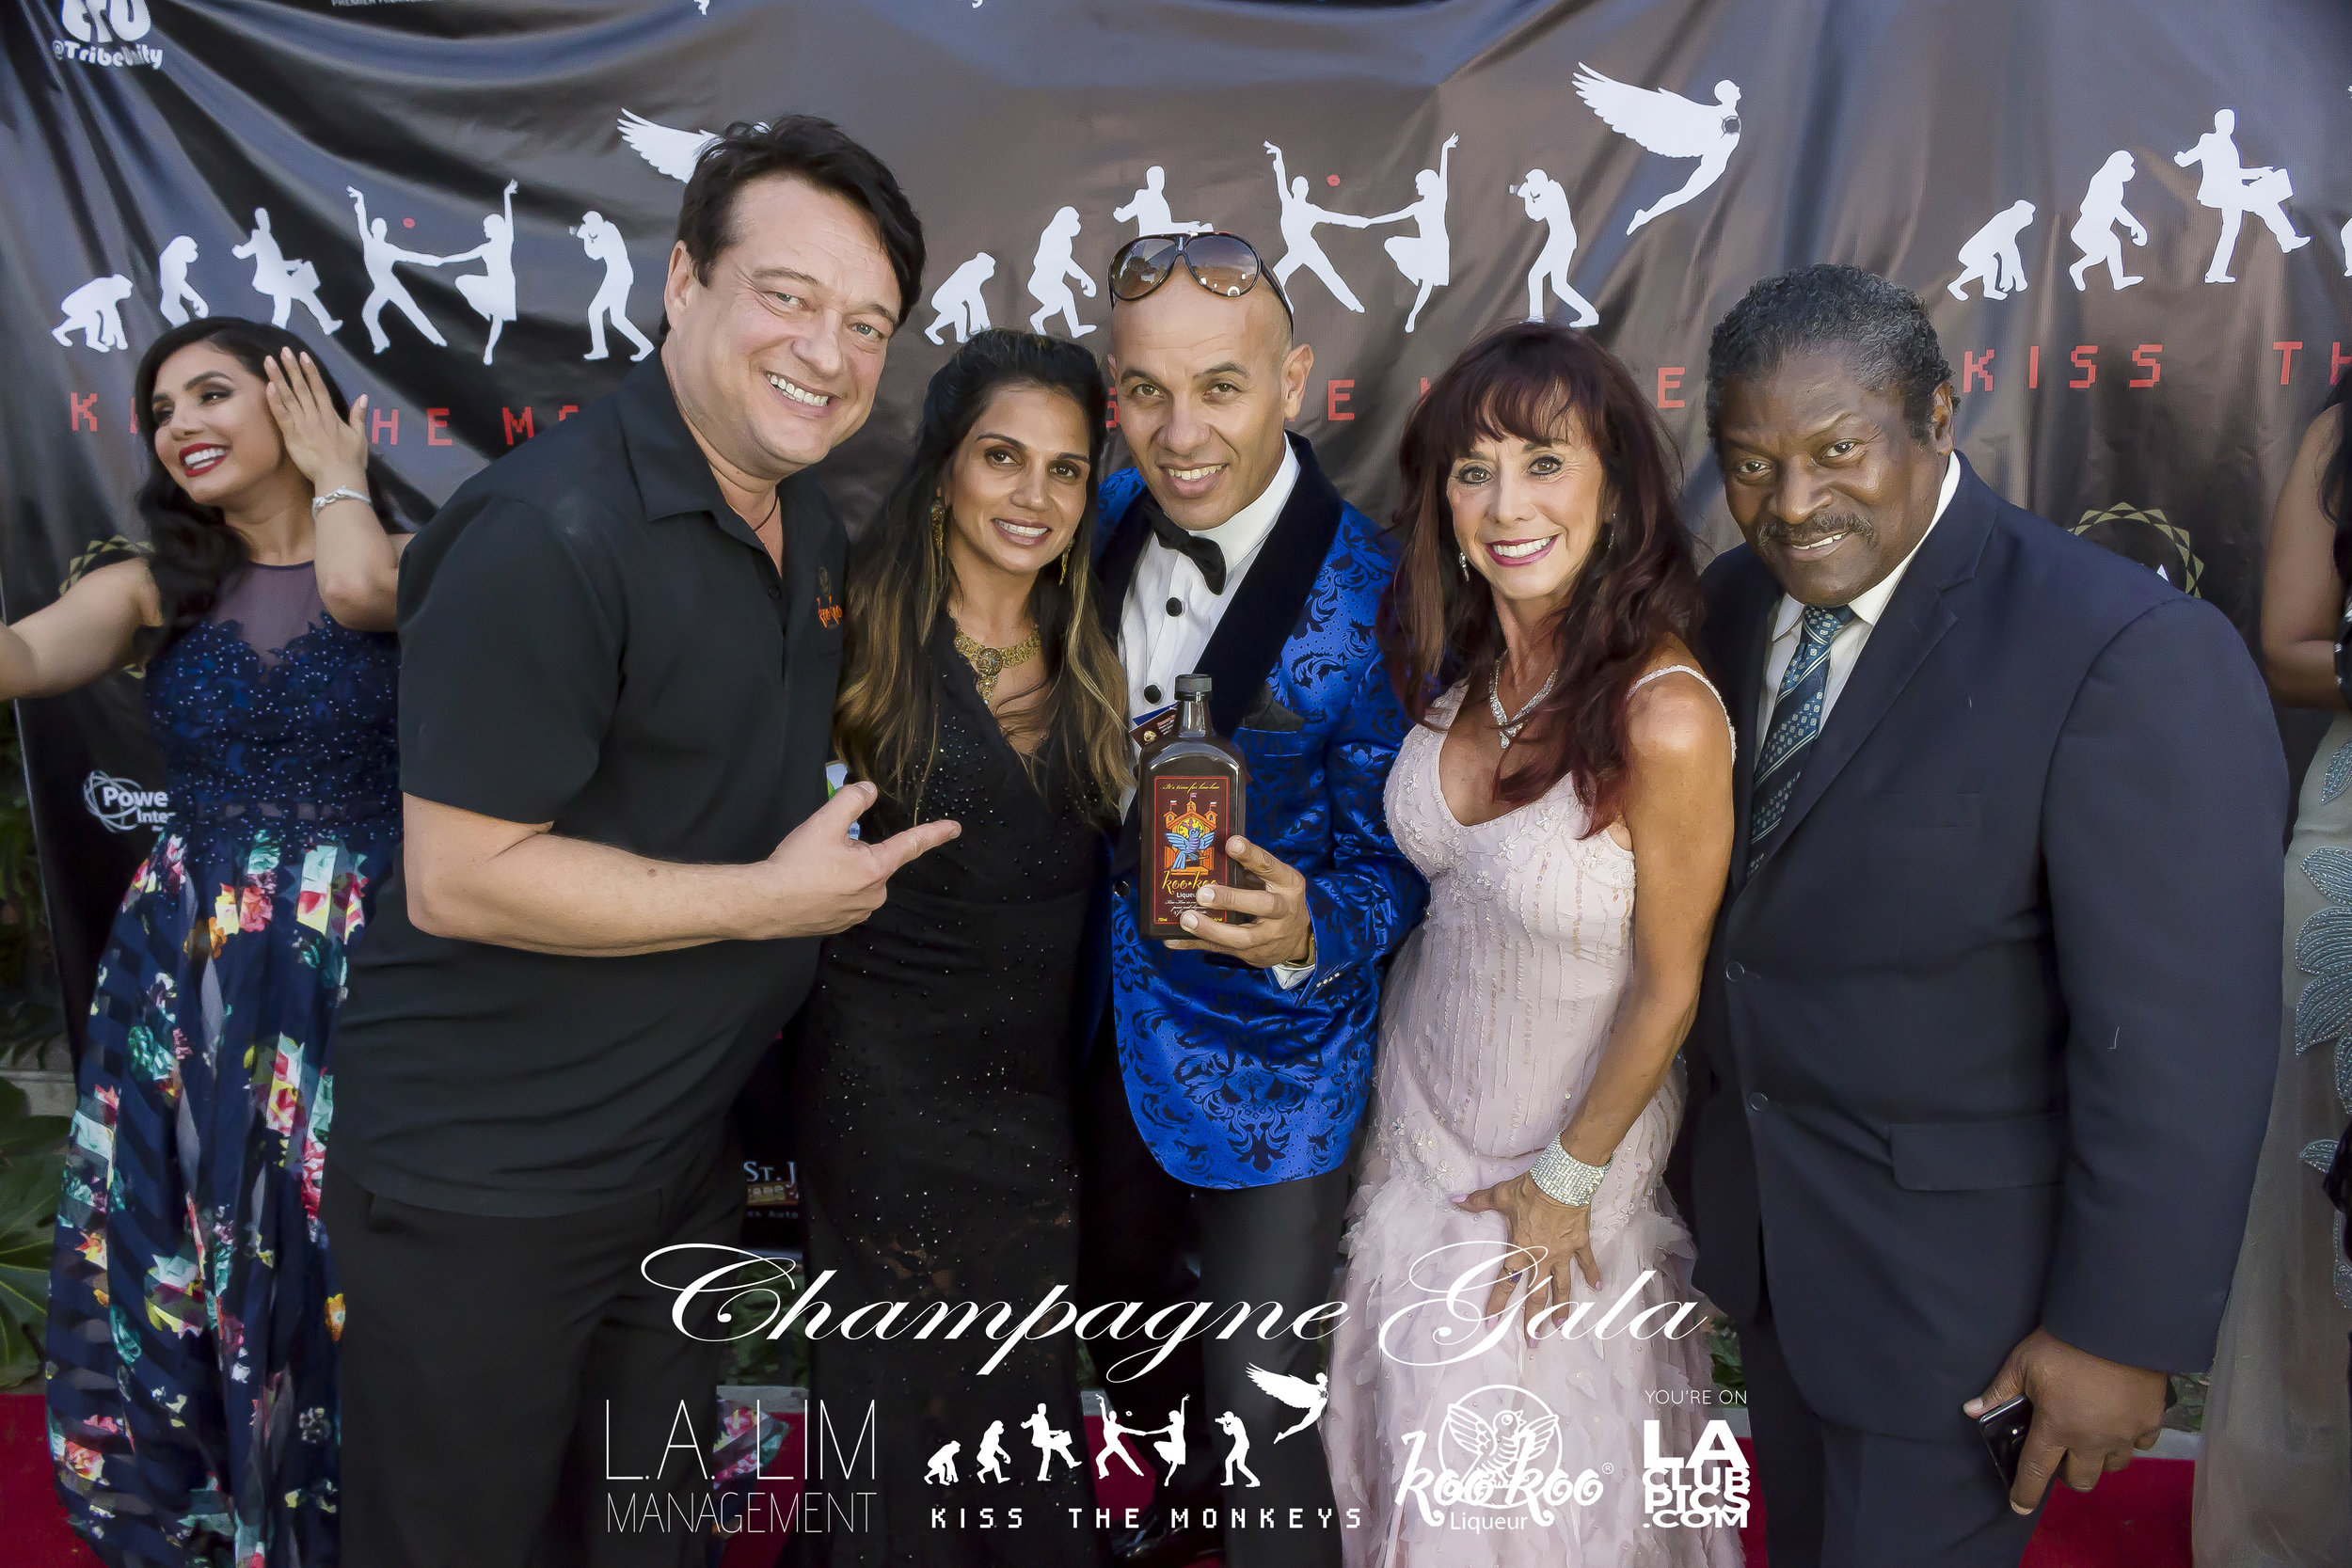 Kiss The Monkeys - Champagne Gala - 07-21-18_144.jpg